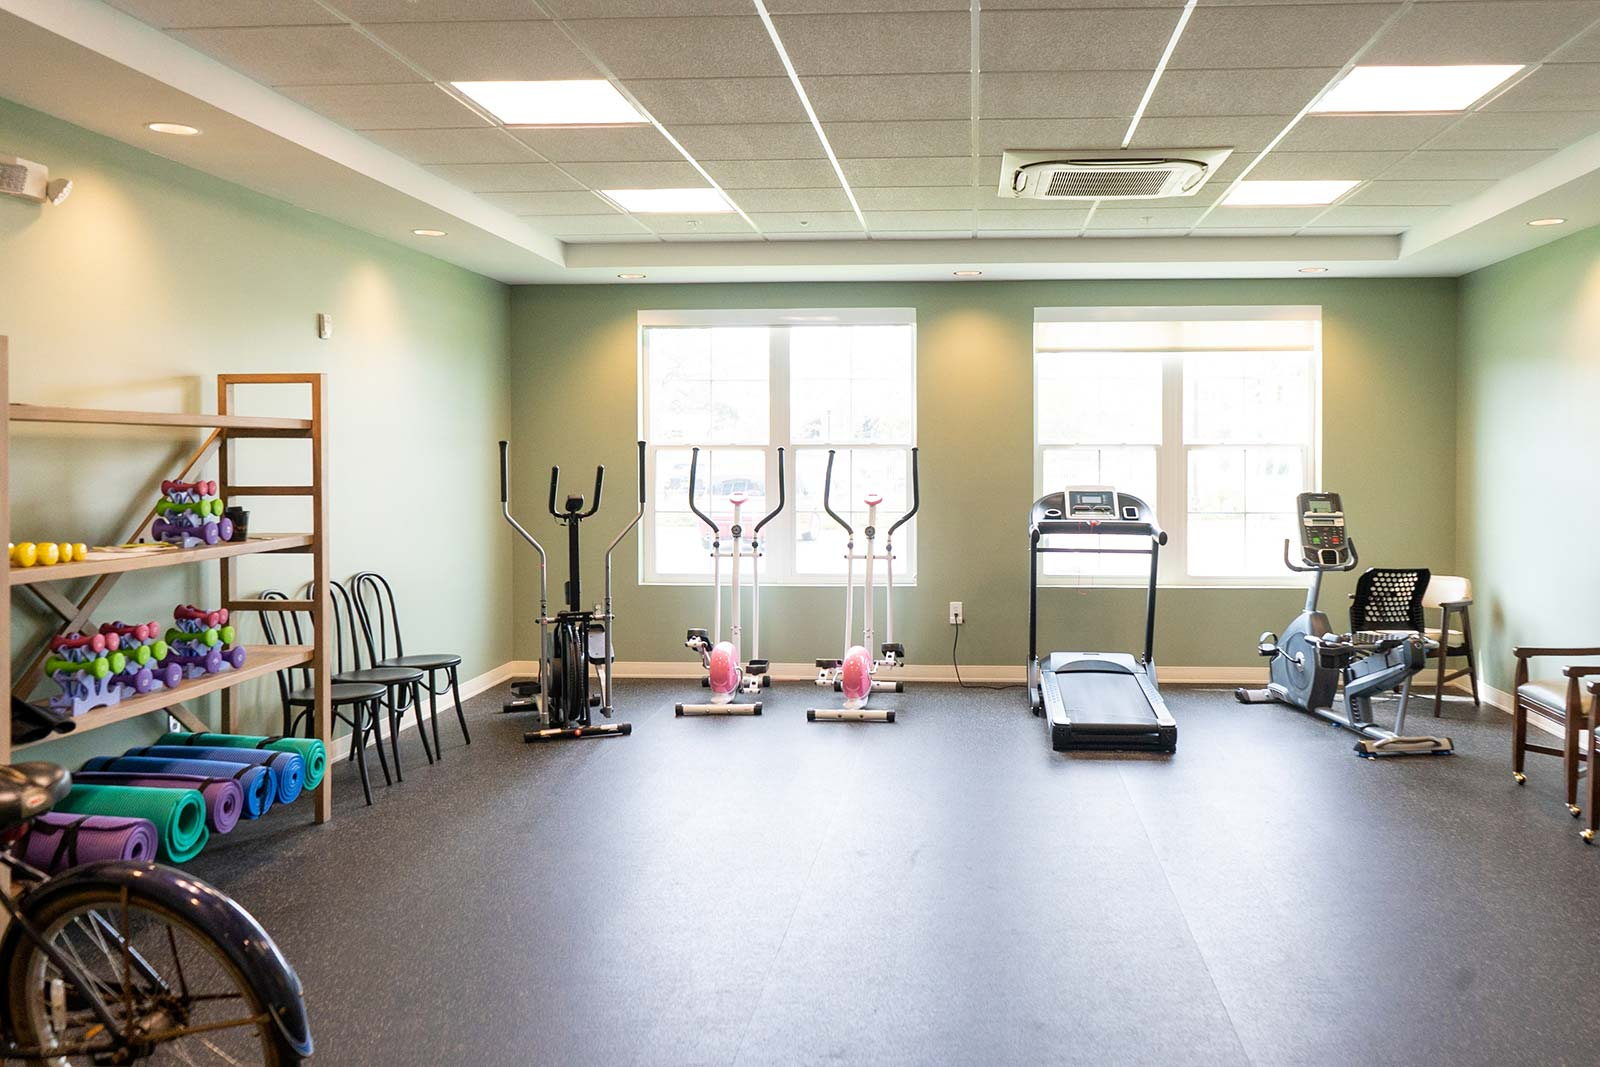 Fitness center at The Arbors of Gulf Breeze in Gulf Breeze, FL